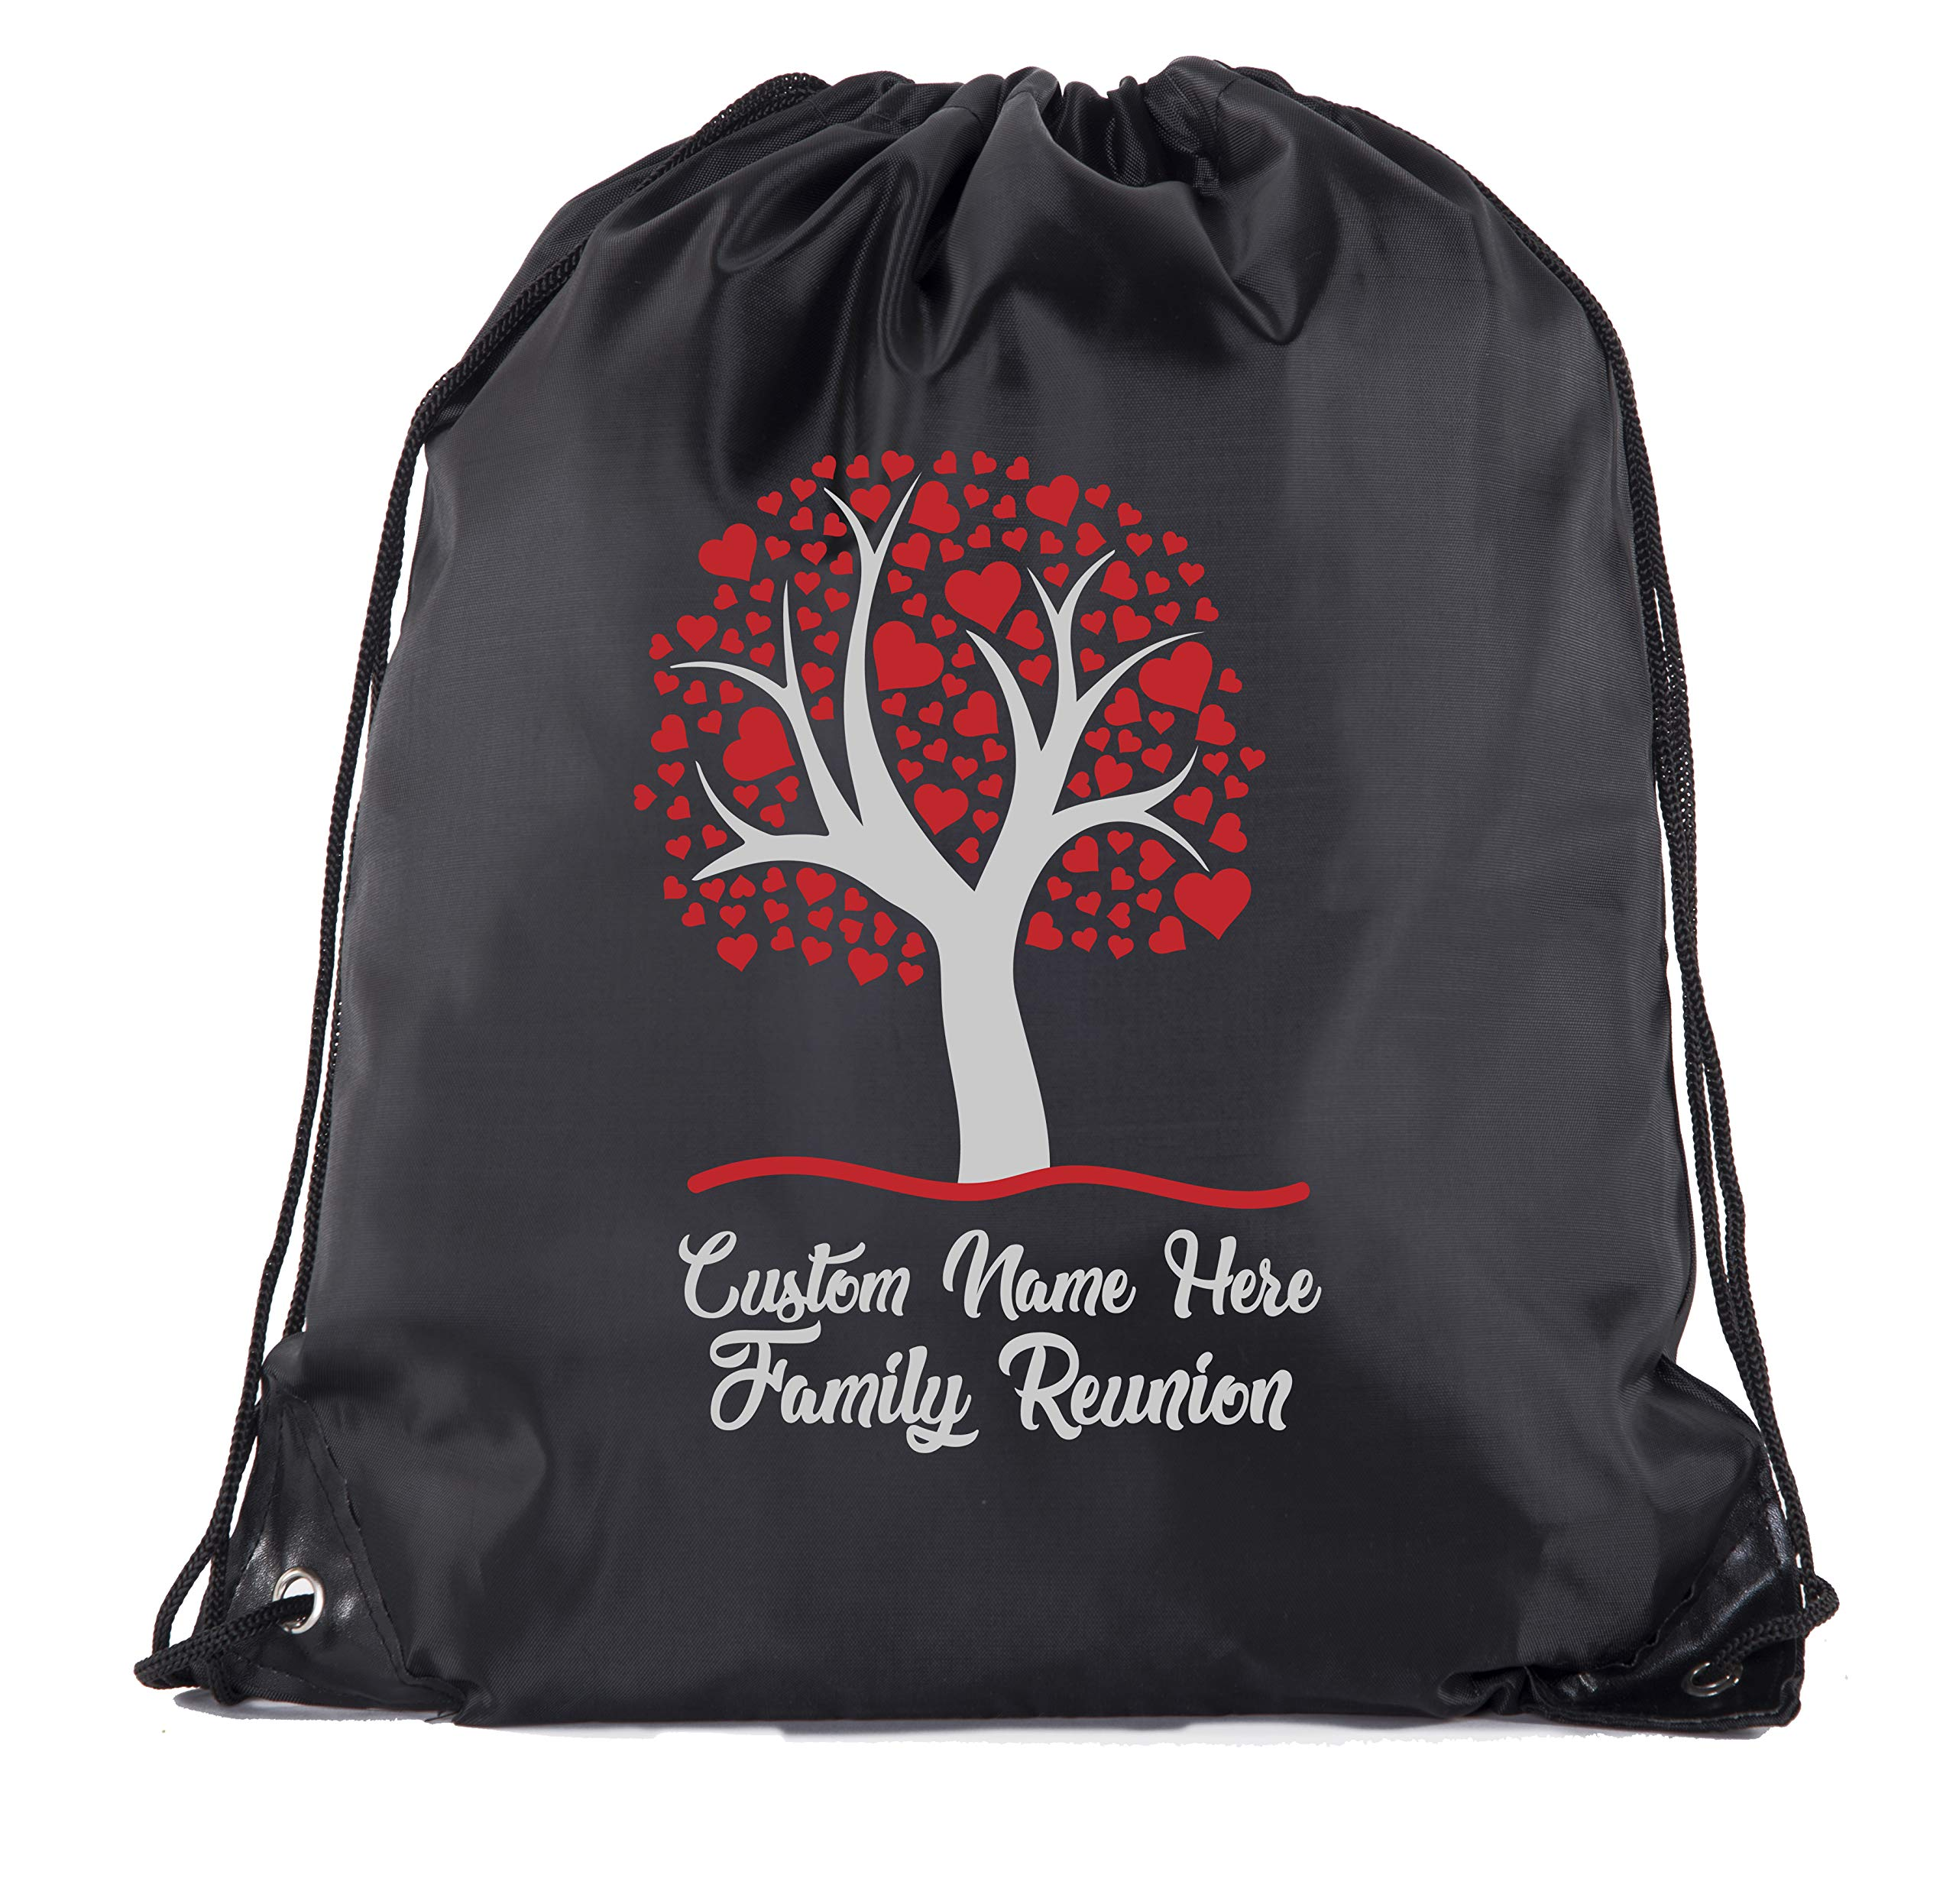 Family Tree with Hearts with Custom Name- Family Reunion Party Favor Bags - 10PK Black CE2500FAM S13